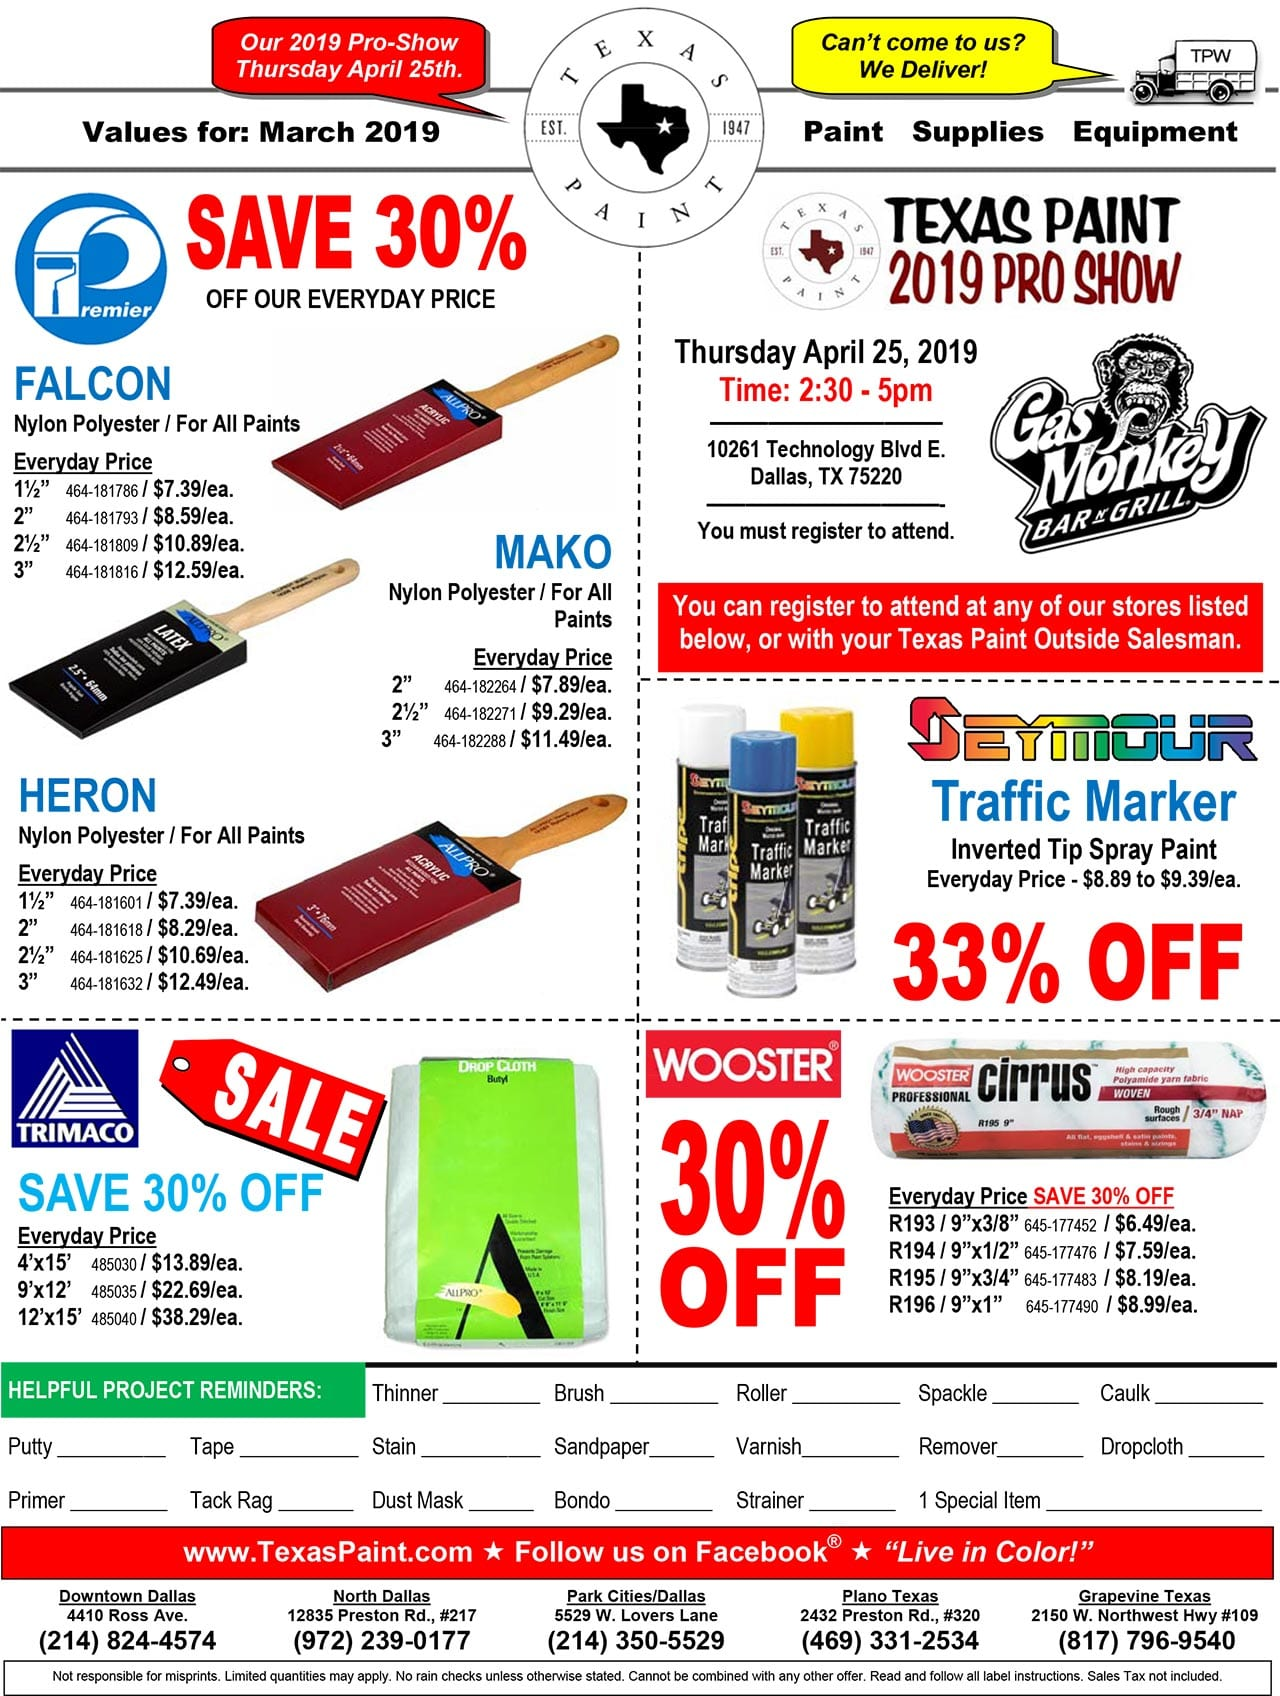 March Sales and Promos